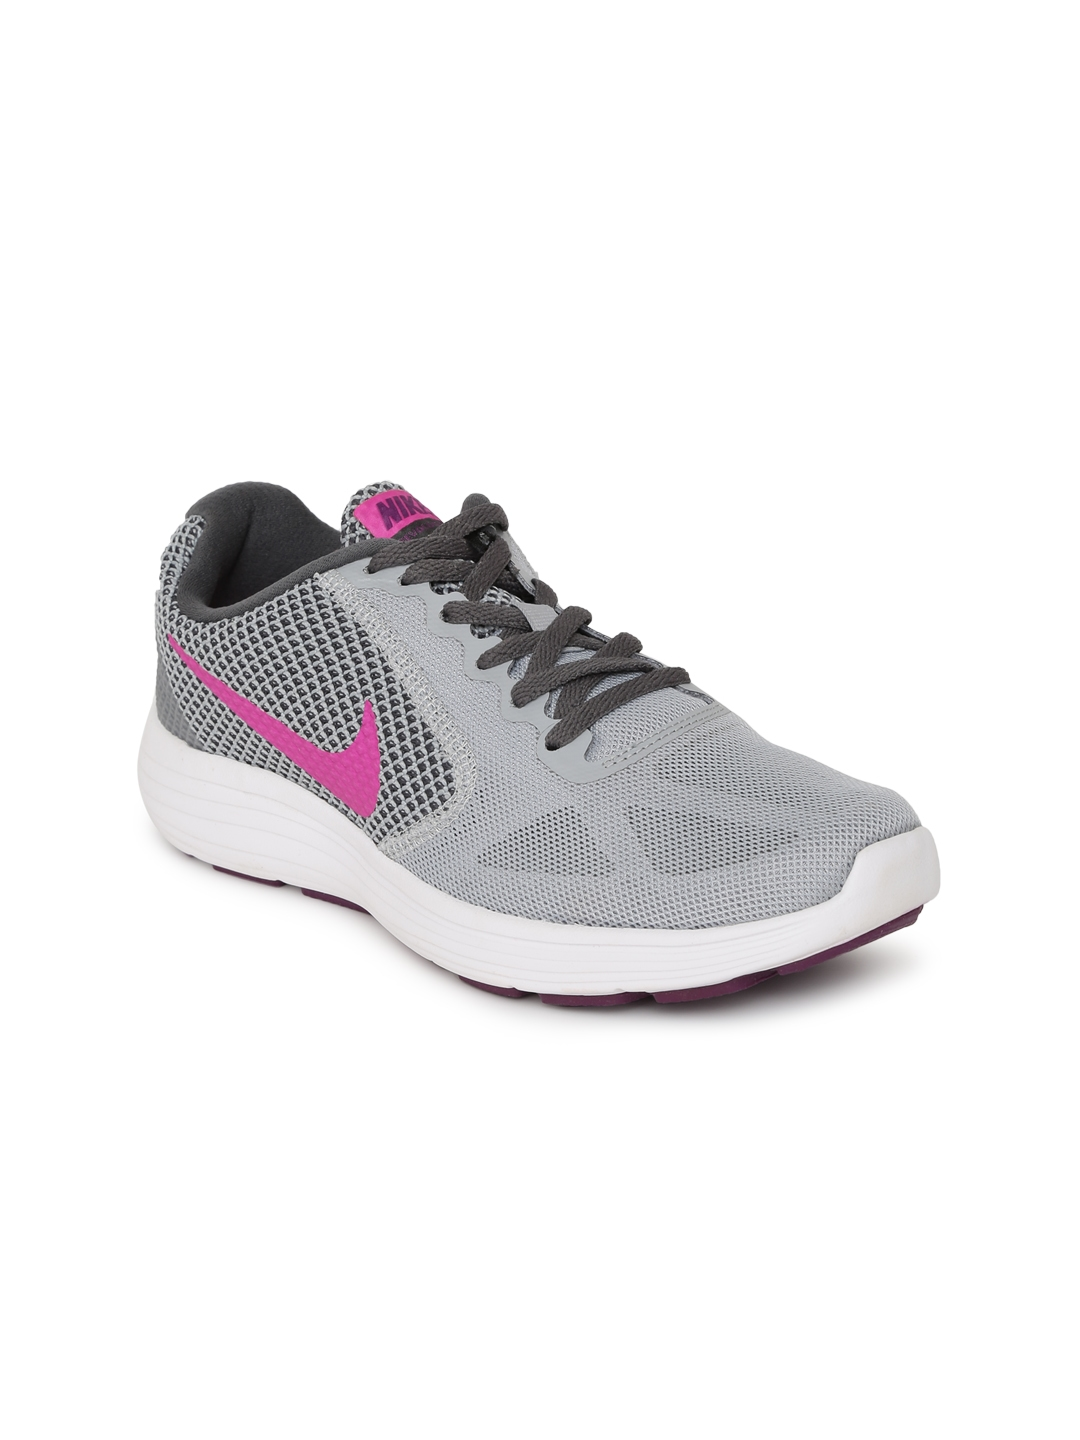 d22598761e2 Buy Nike Women Grey Revolution 3 Running Shoes - Sports Shoes for ...